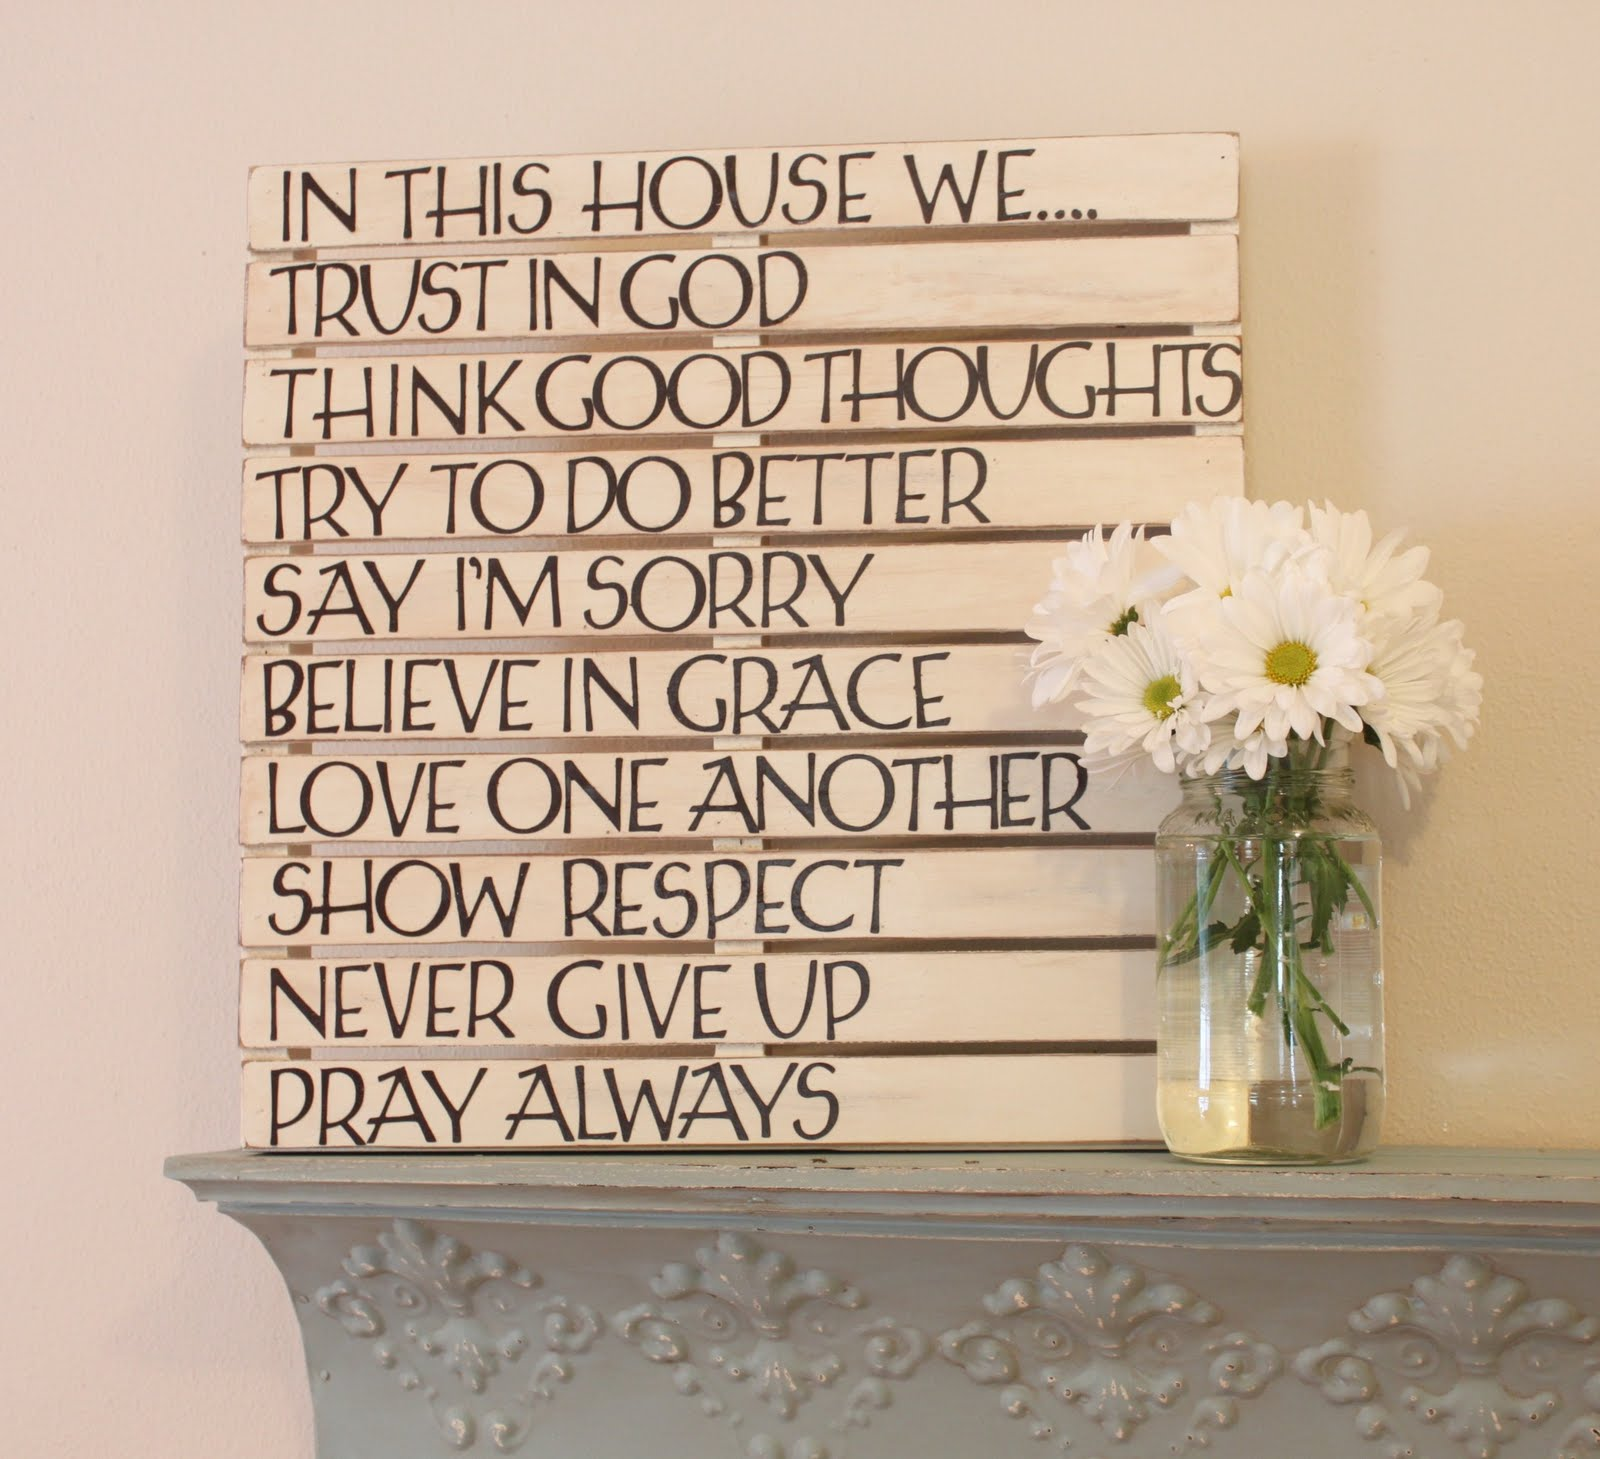 Faqs love of family home for Home decor quotes on wall